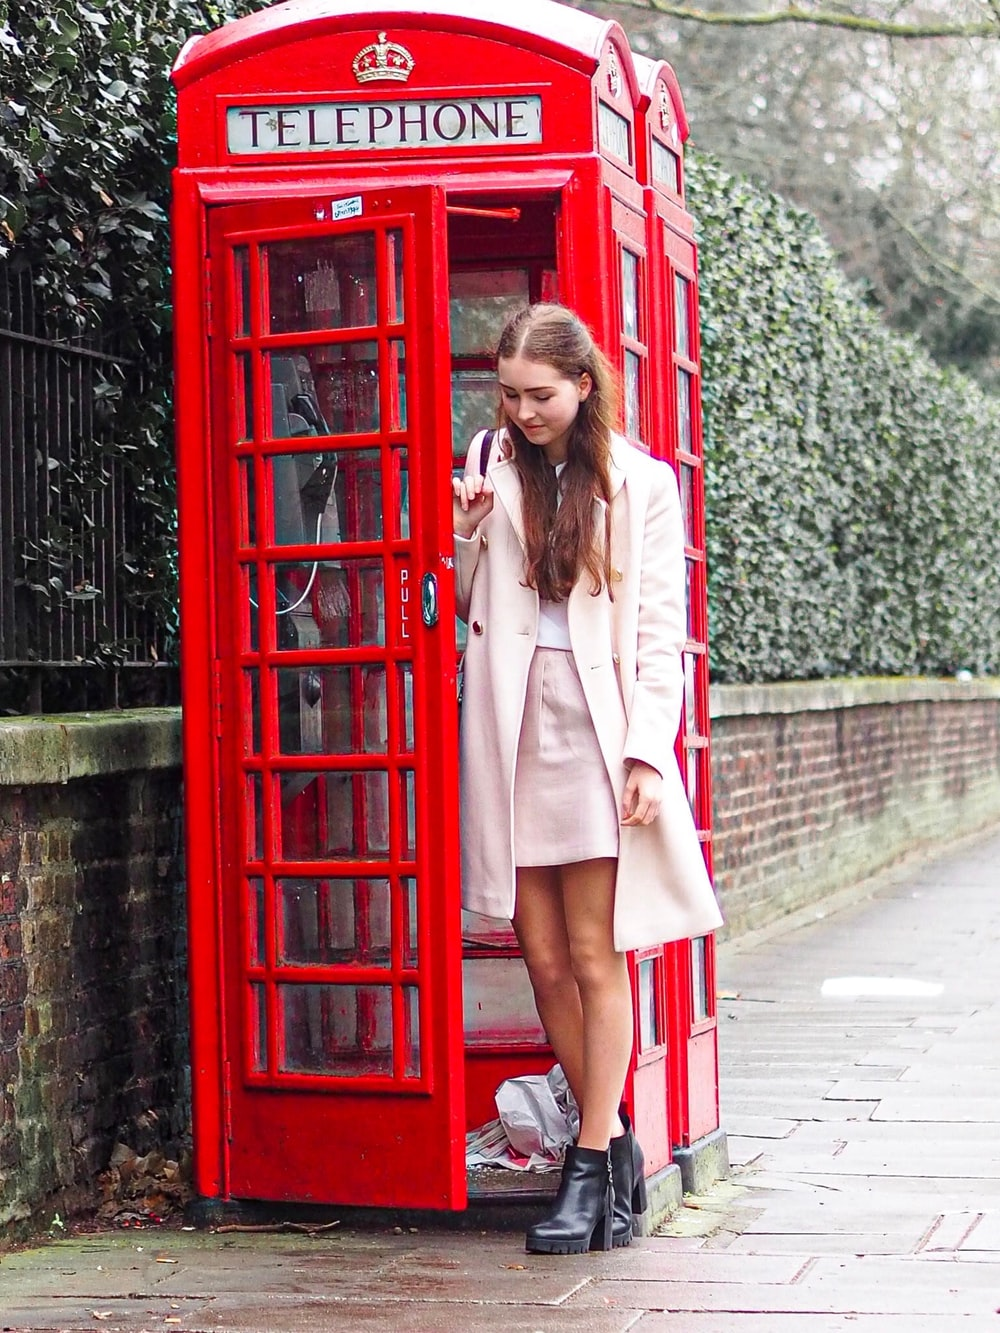 woman standing near the red telephone booth